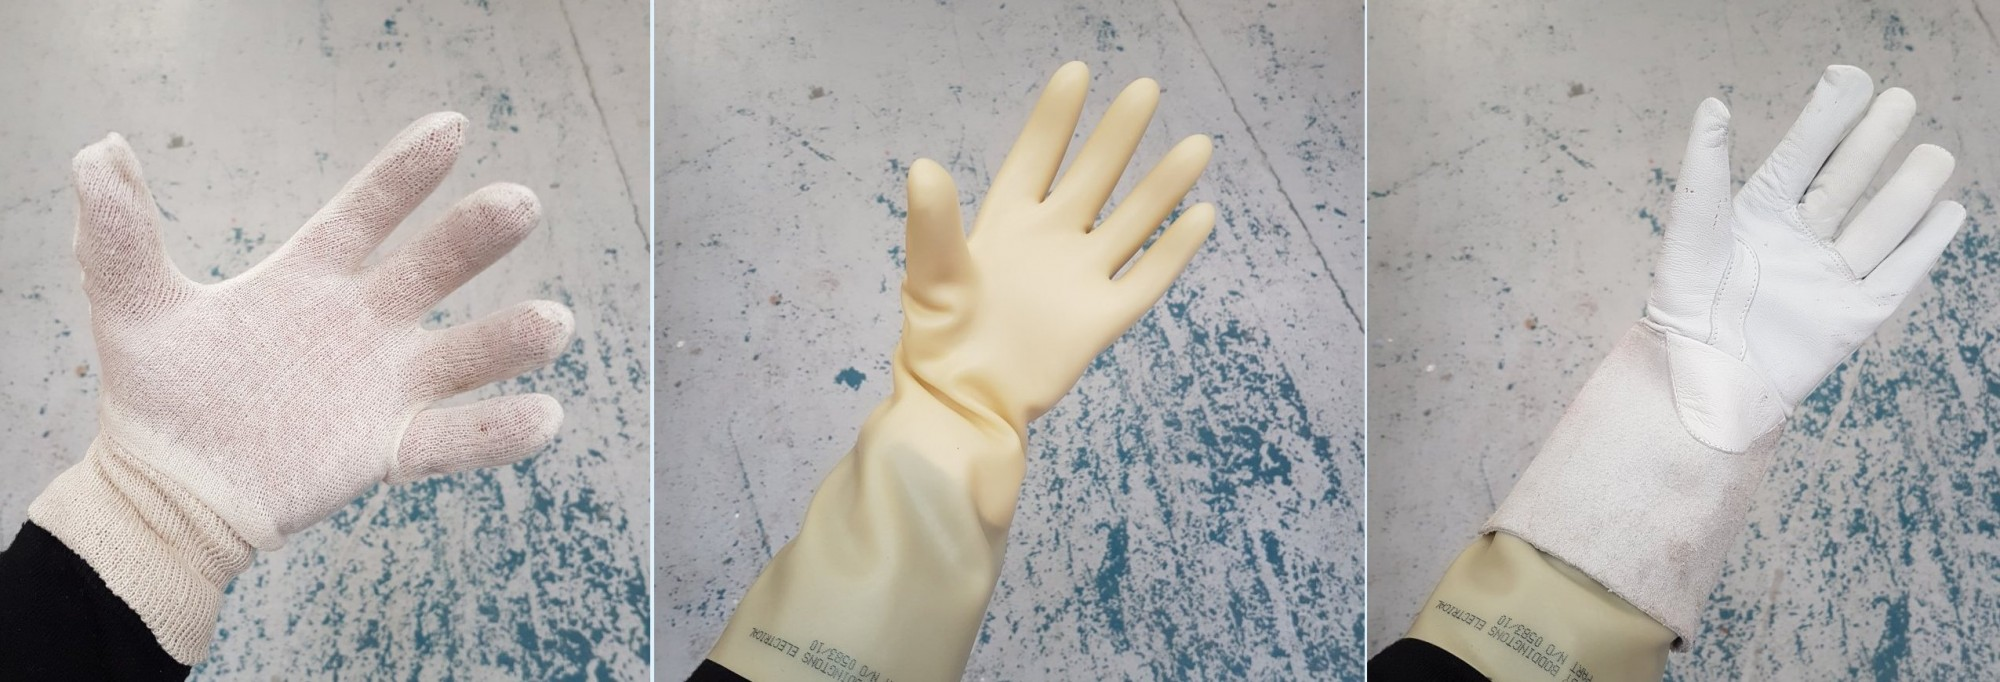 3 pairs of gloves